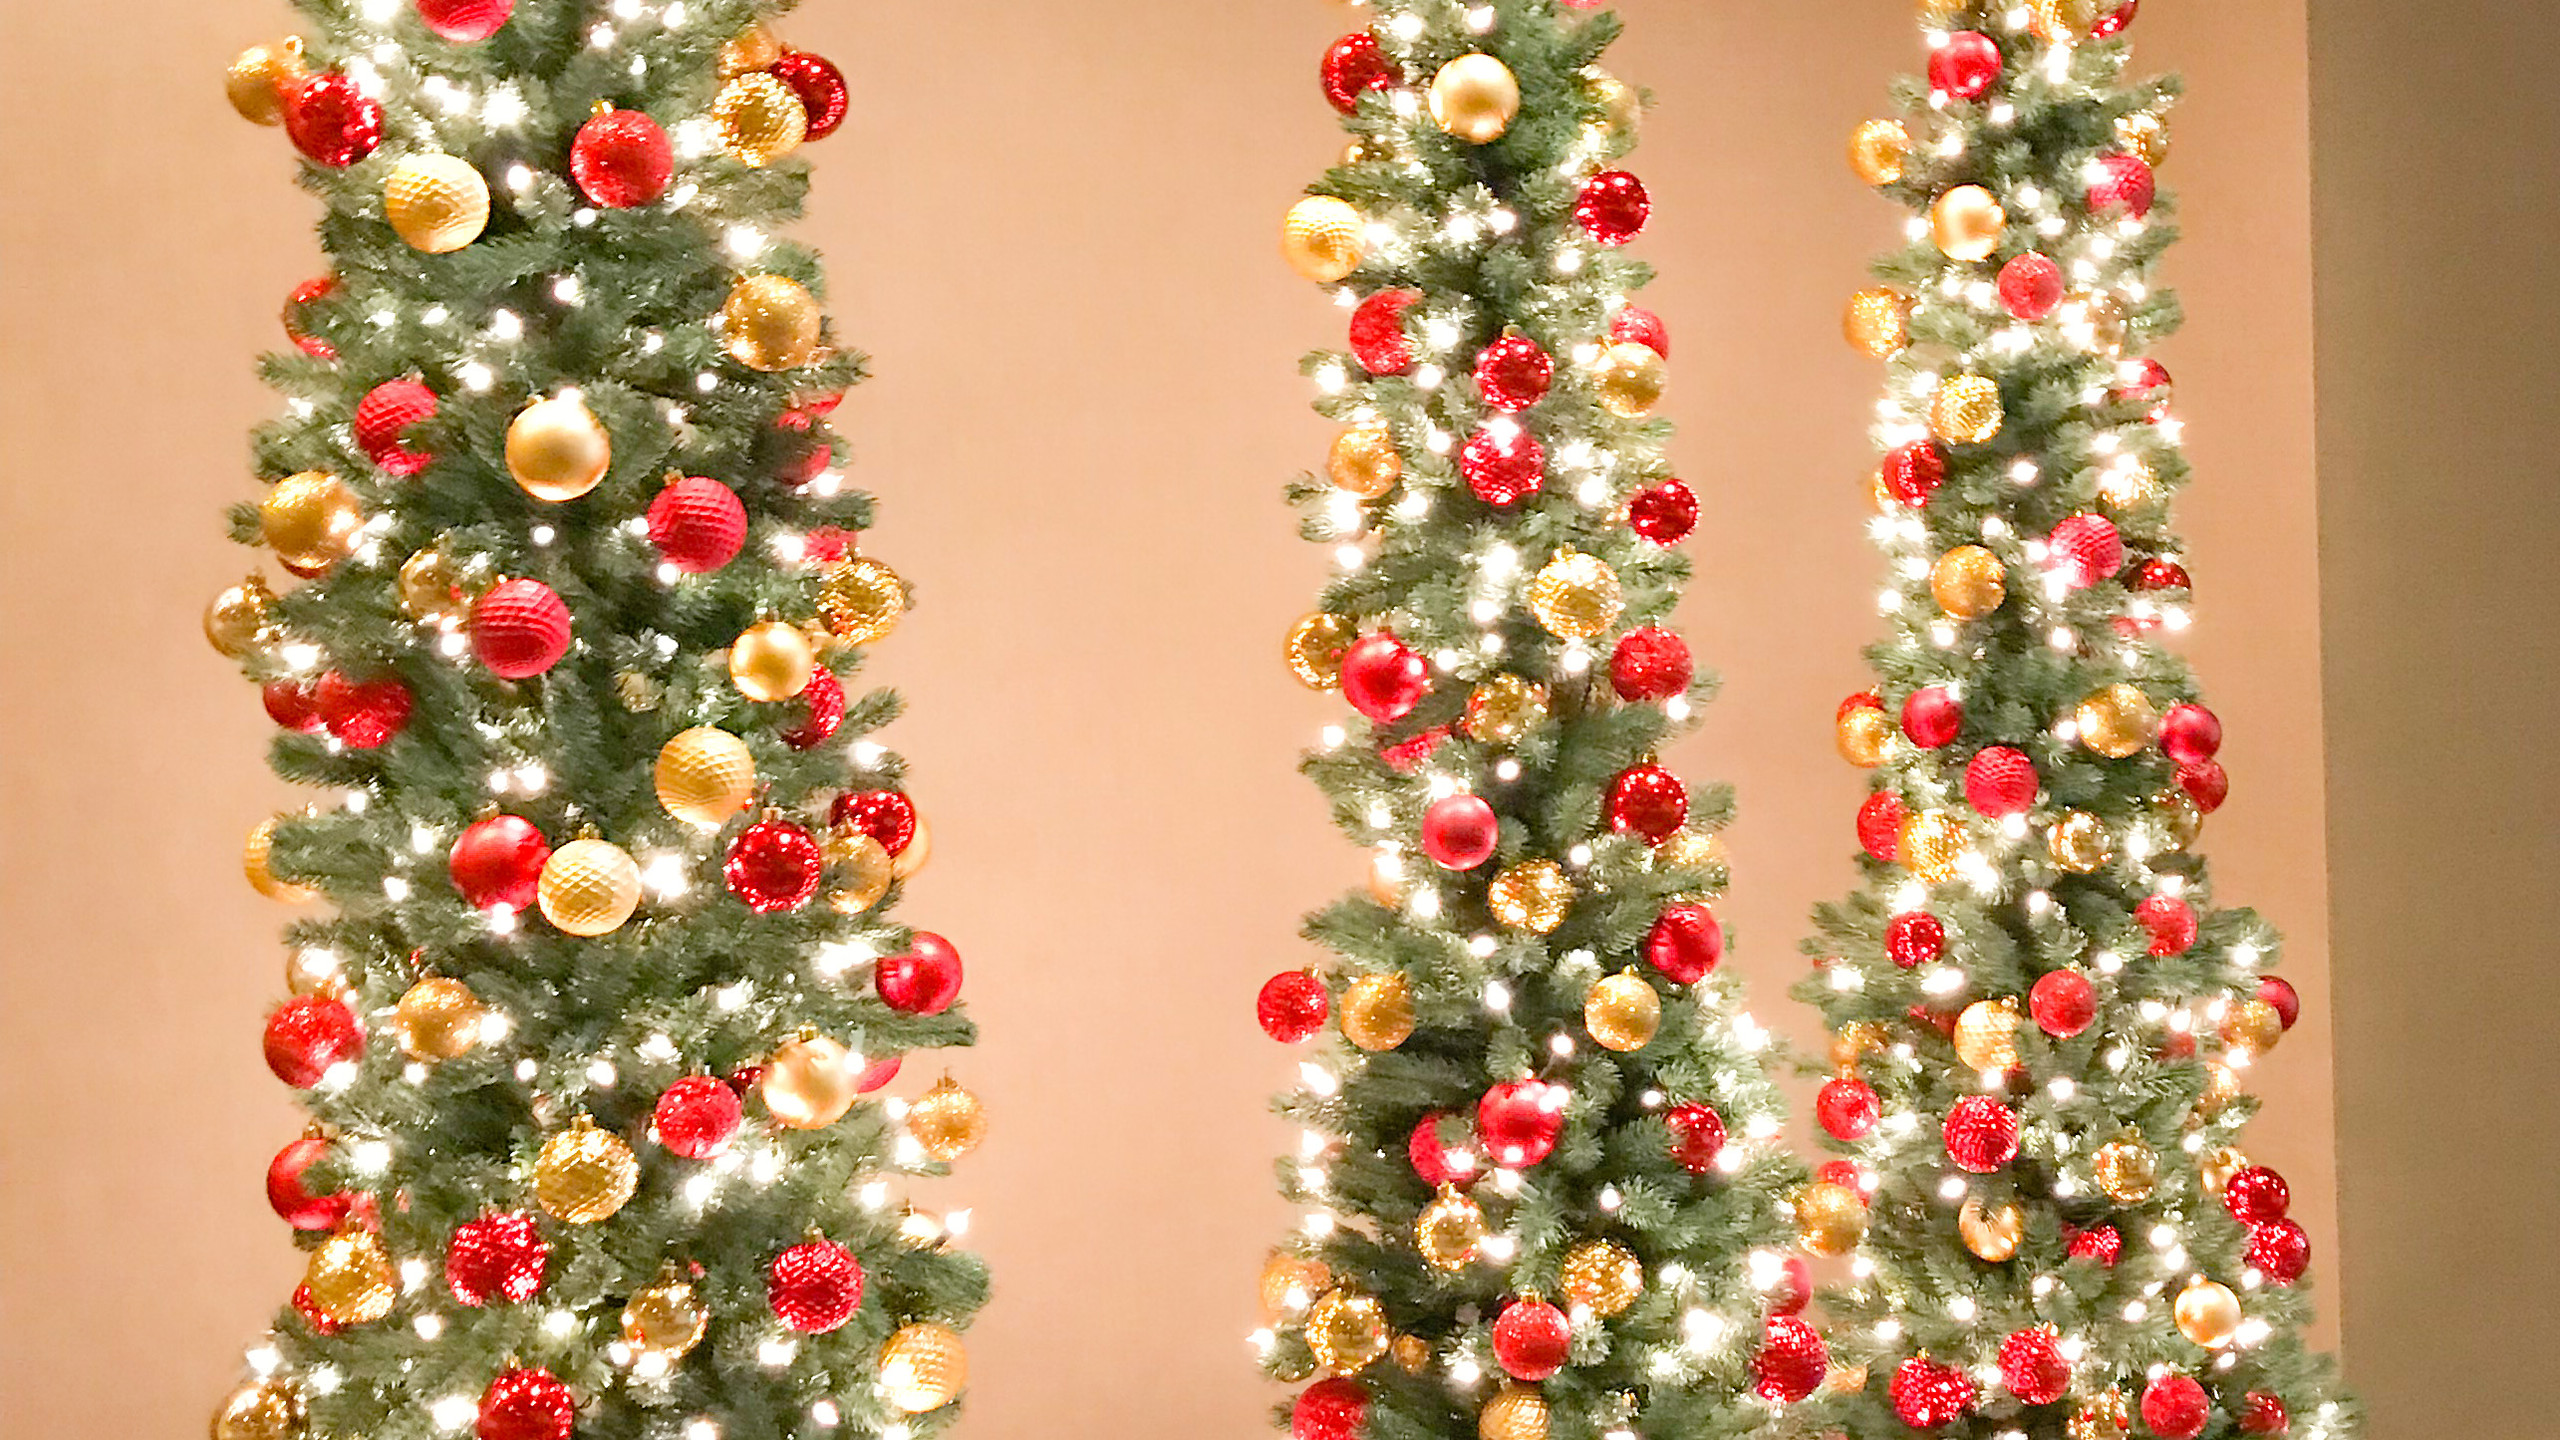 Trio of skinny Festive Christmas trees designed by Franzie's Flower Design for the Fairmont Dallas hotel, located near the ballrooms.